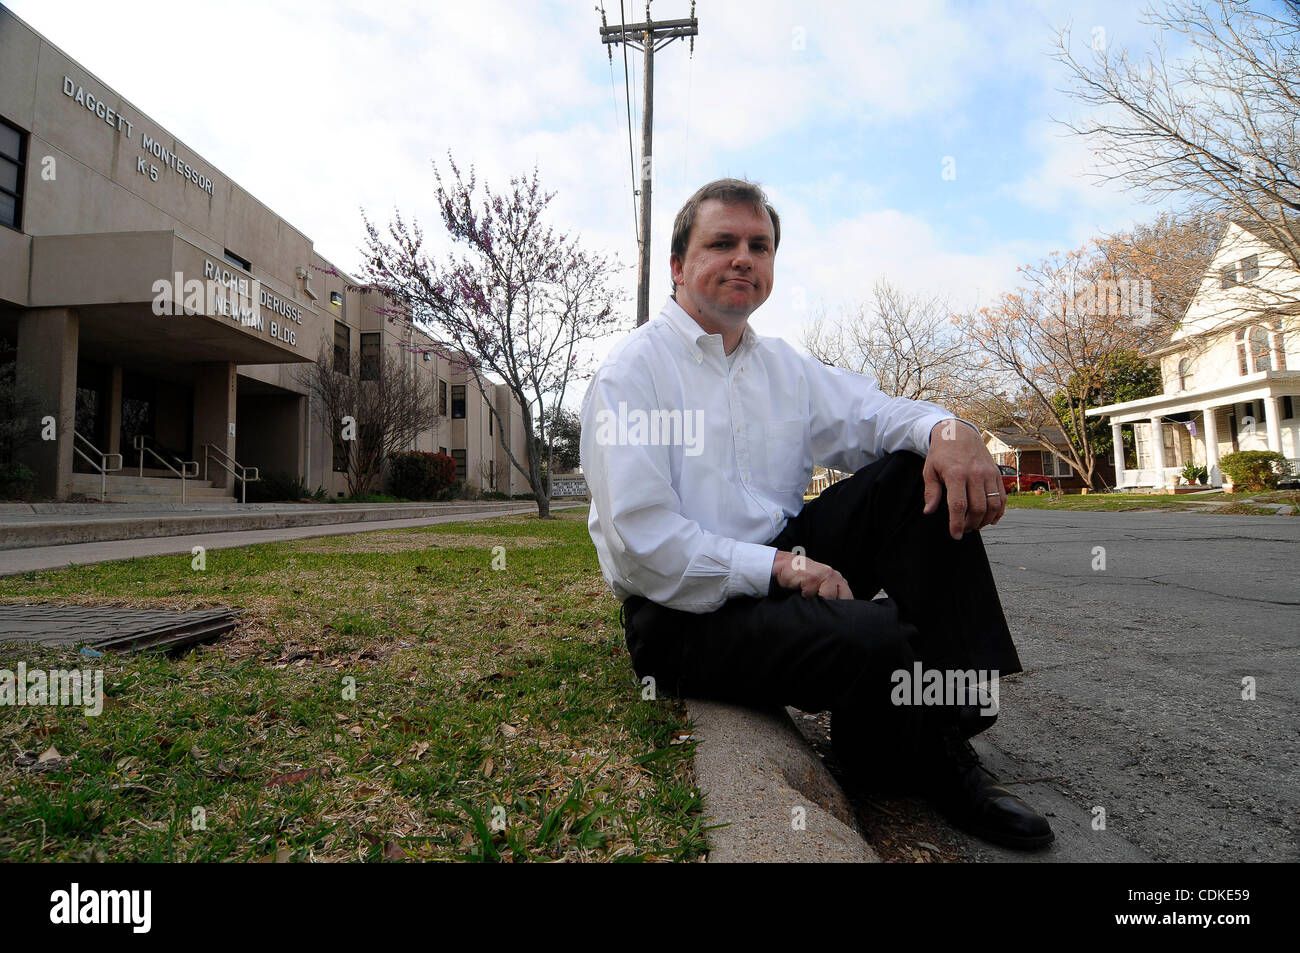 Mar. 17, 2011 - Weatherford, Texas, USA - 3/17/2011.   JASON C.N. SMITH sits in front of Daggett Montessori school - Stock Image